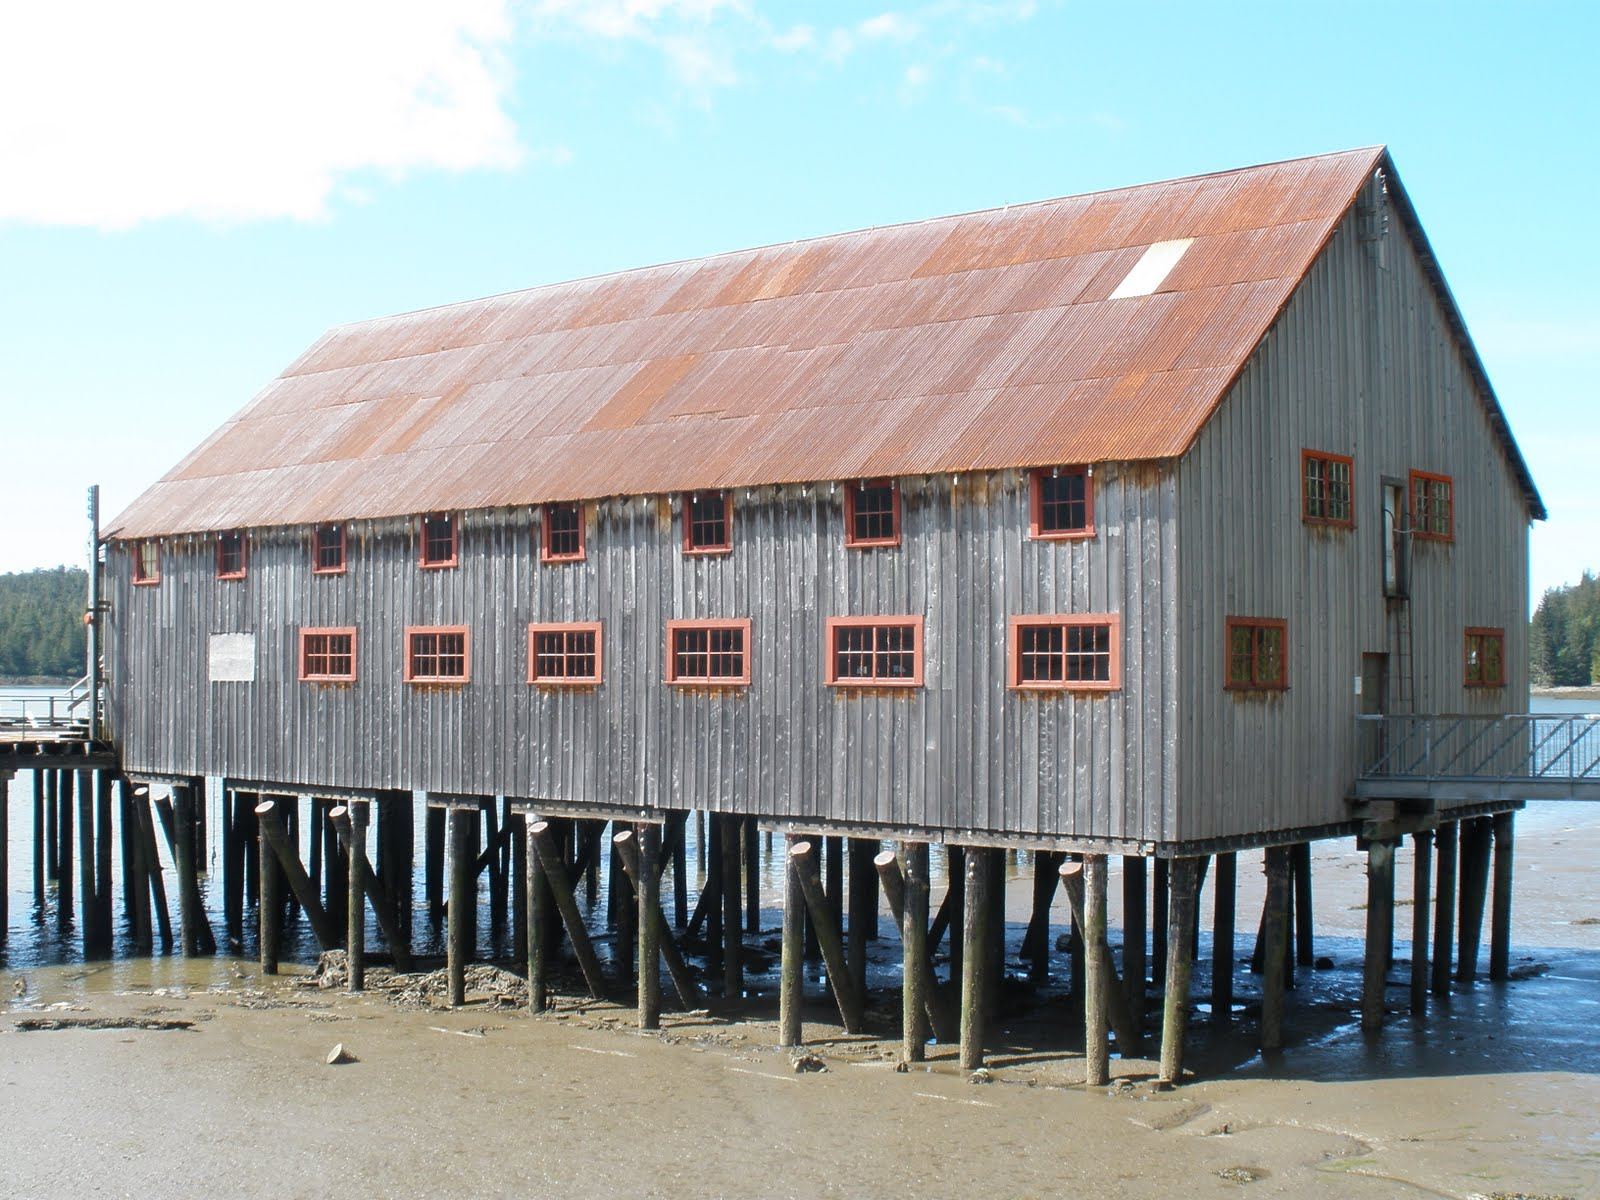 North Pacific Net Shed